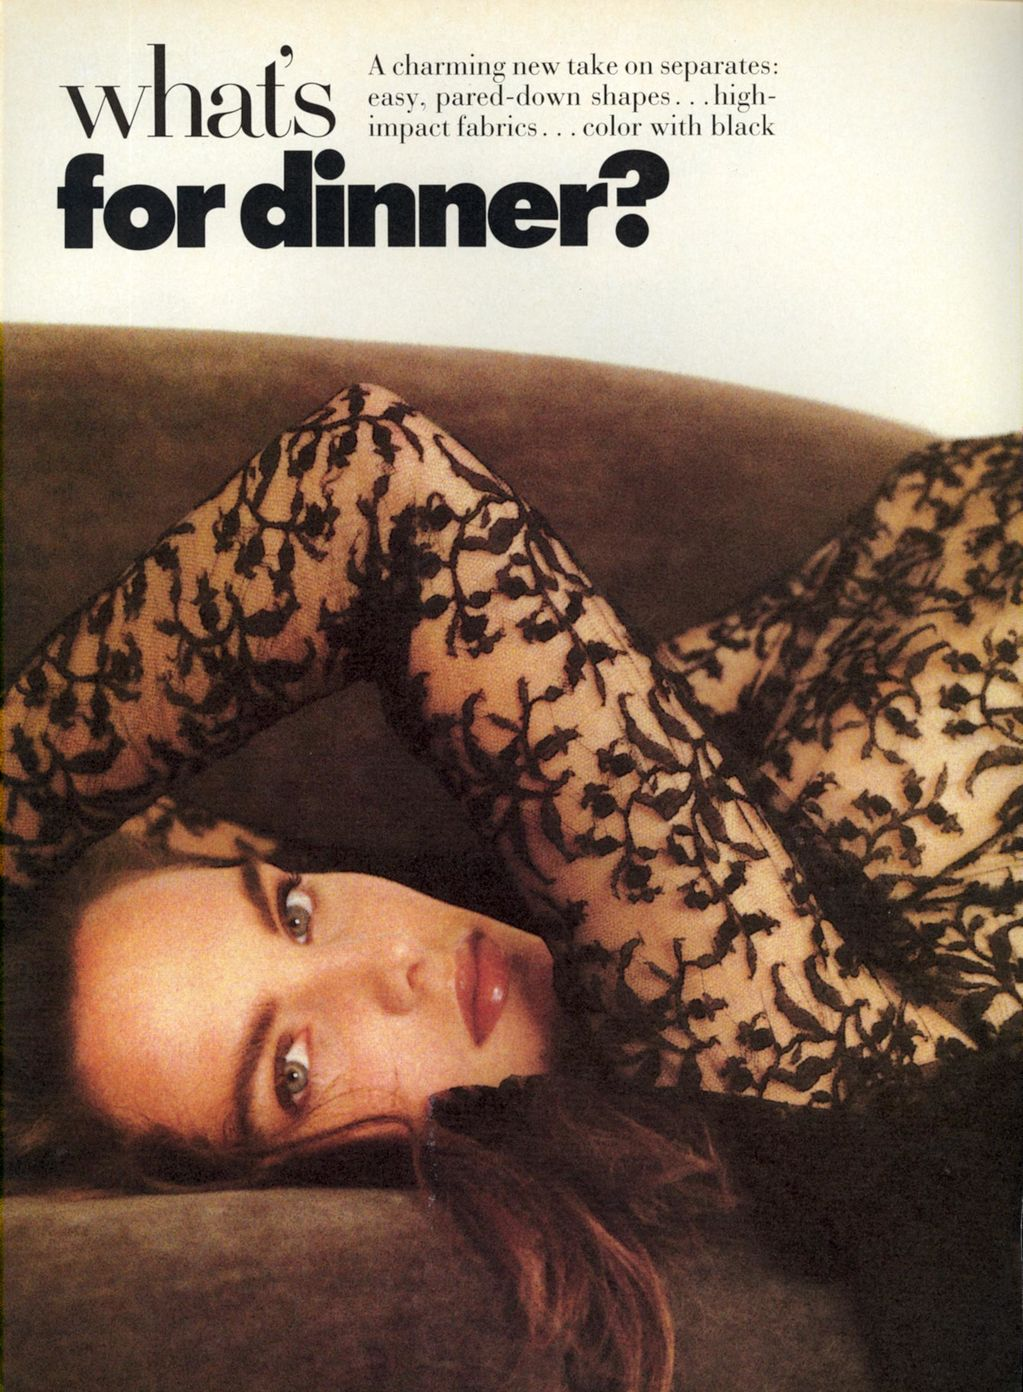 Vogue (US) October 1988 | What's For Dinner 01.jpg